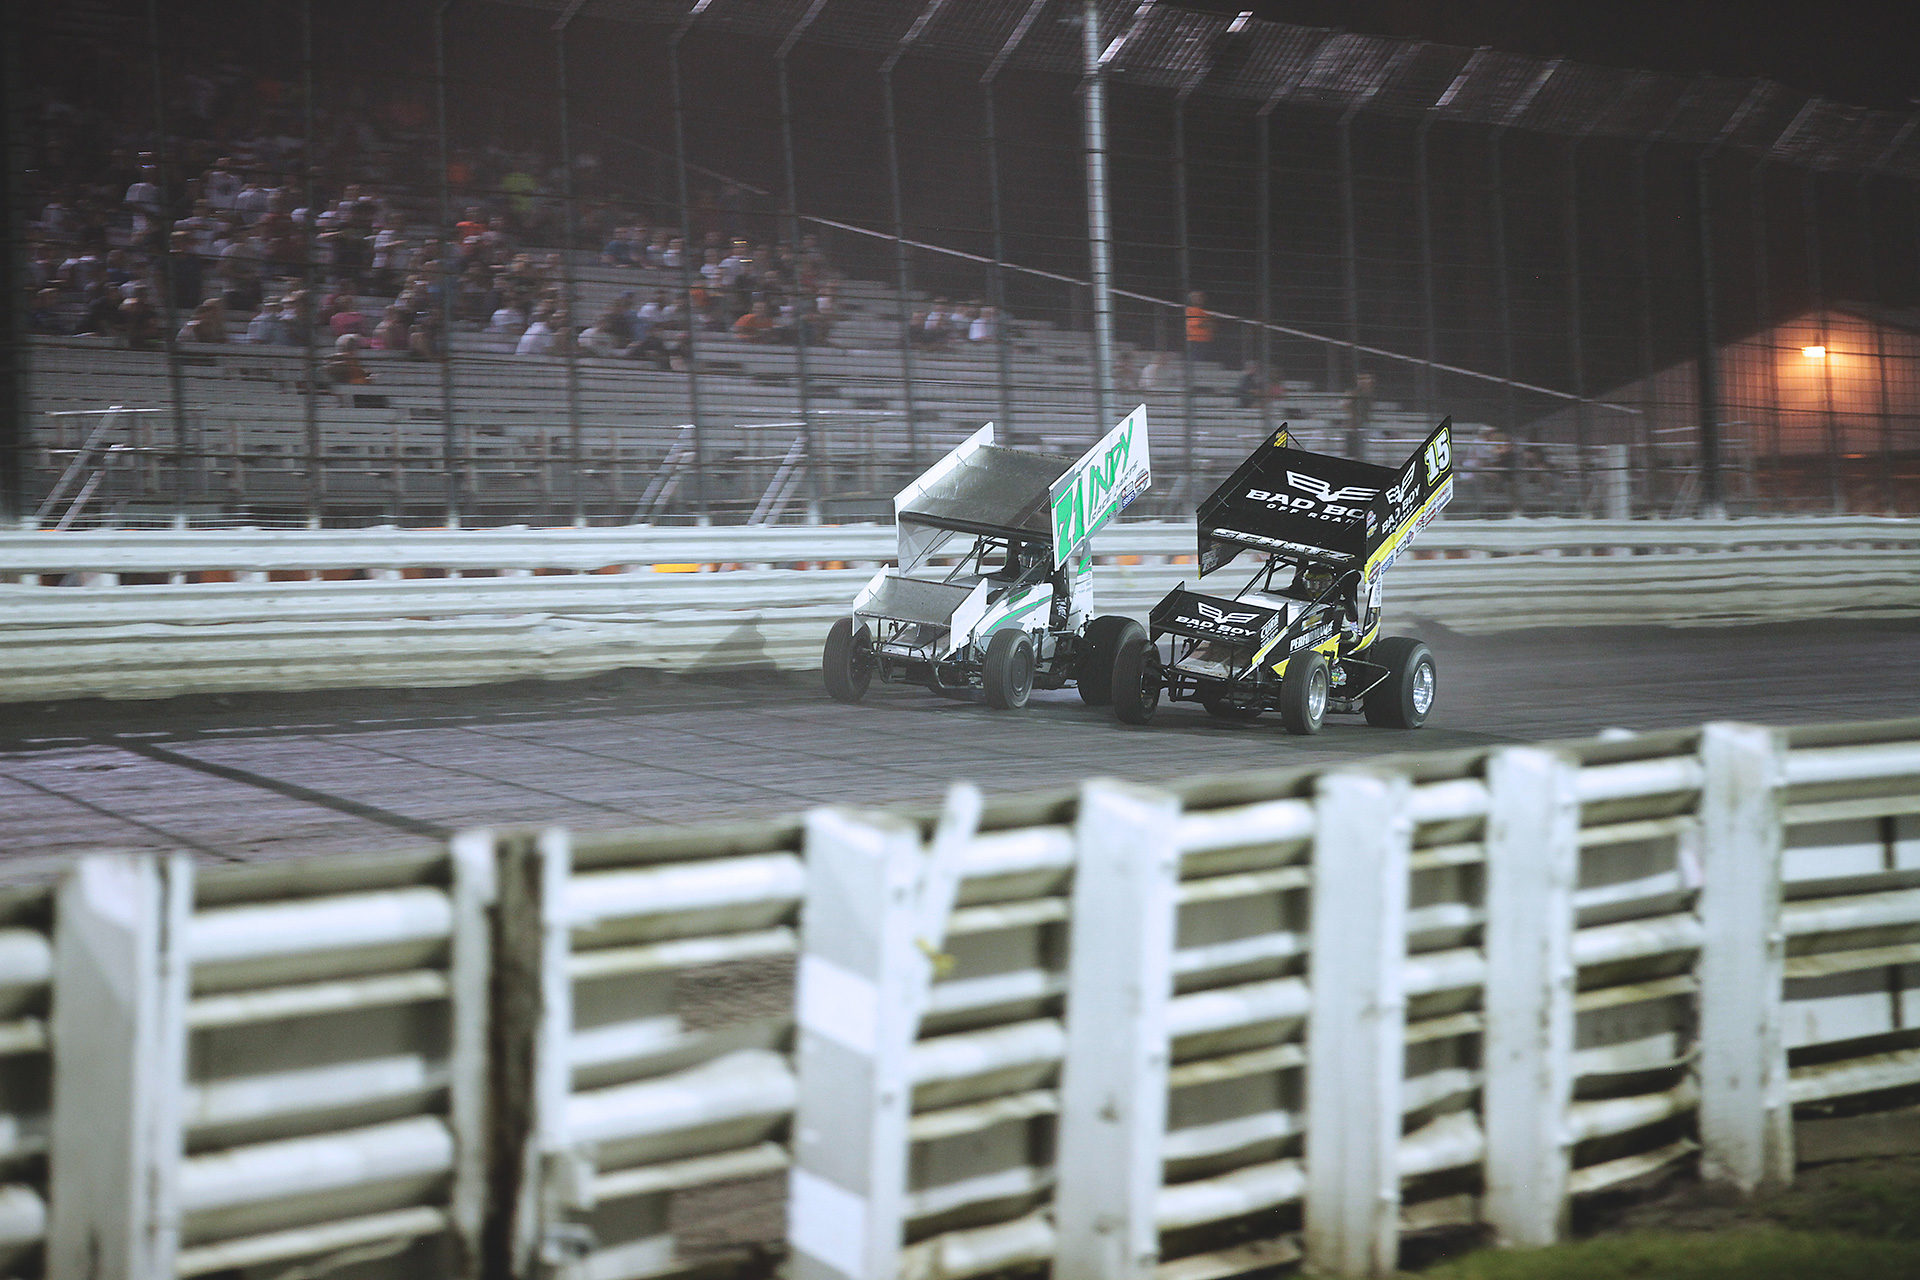 Jamie Veal put up a valiant fight but in the end Donny Schatz was just too strong. On a late-race pass Donny Schatz was able to secure the win during the feature at Knoxville Raceway on Saturday night with The World of Outlaws. ( Jeffrey Turford / TDP )